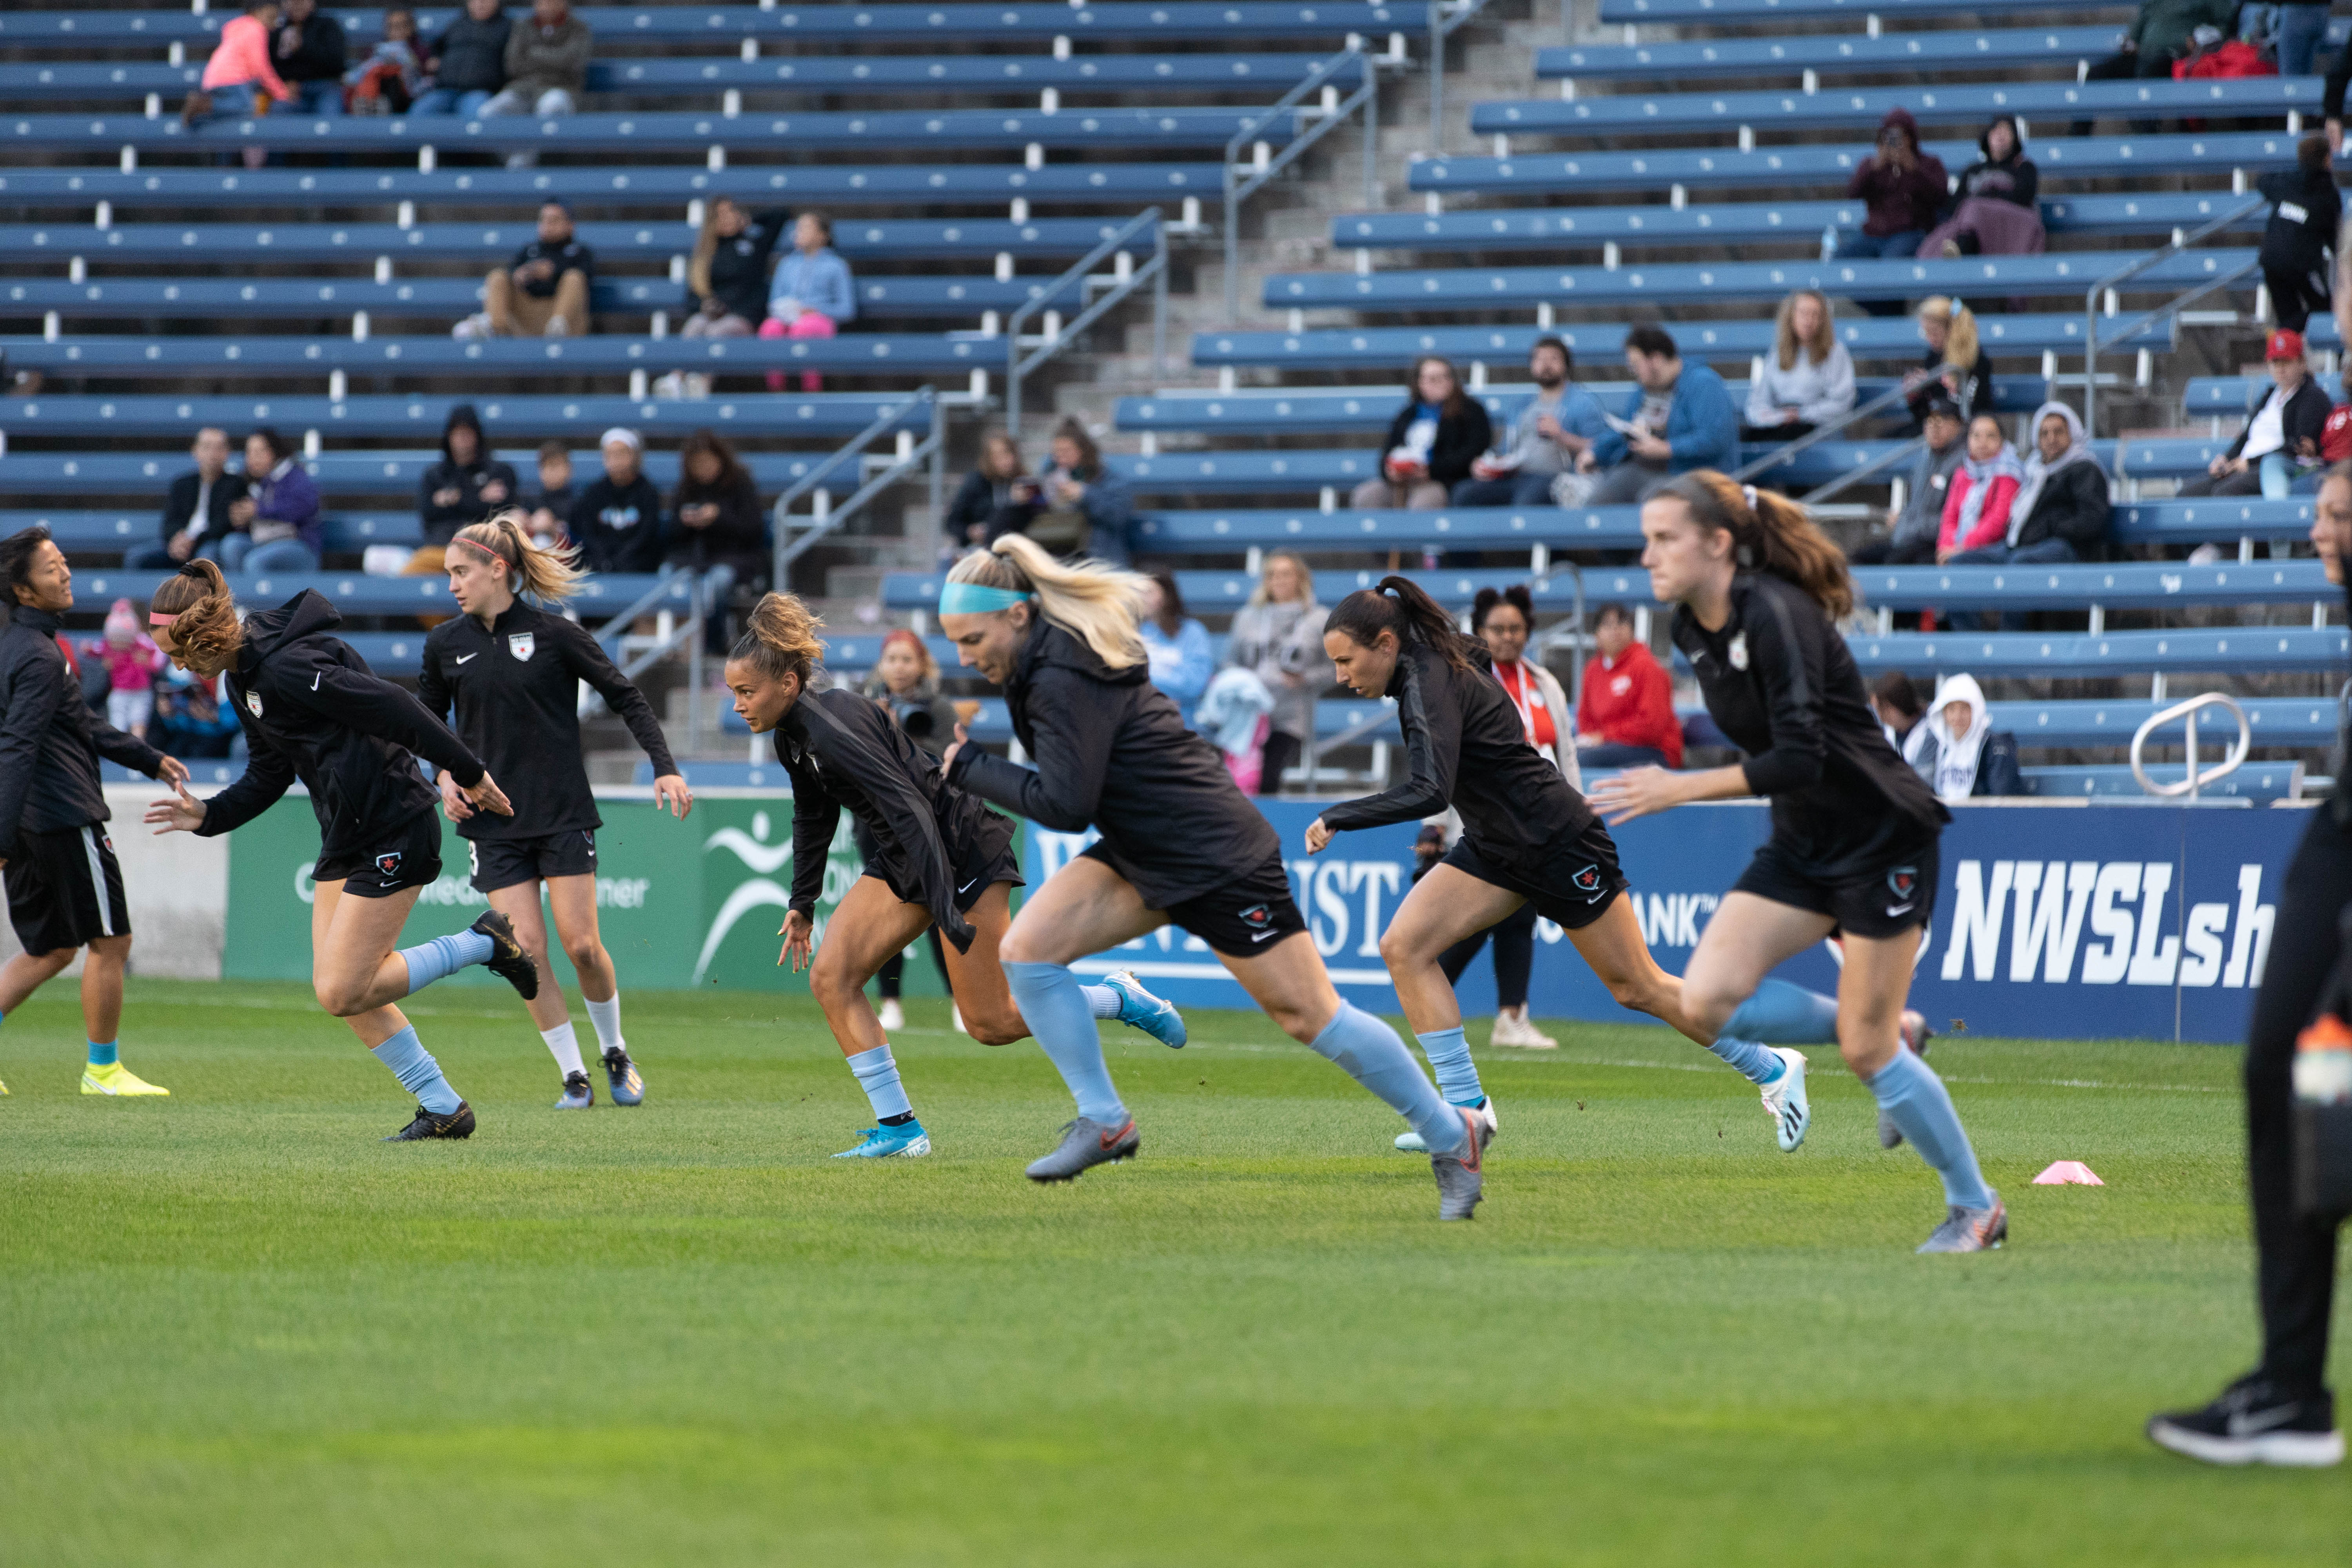 The NWSL plans to begin full team training on May 30.